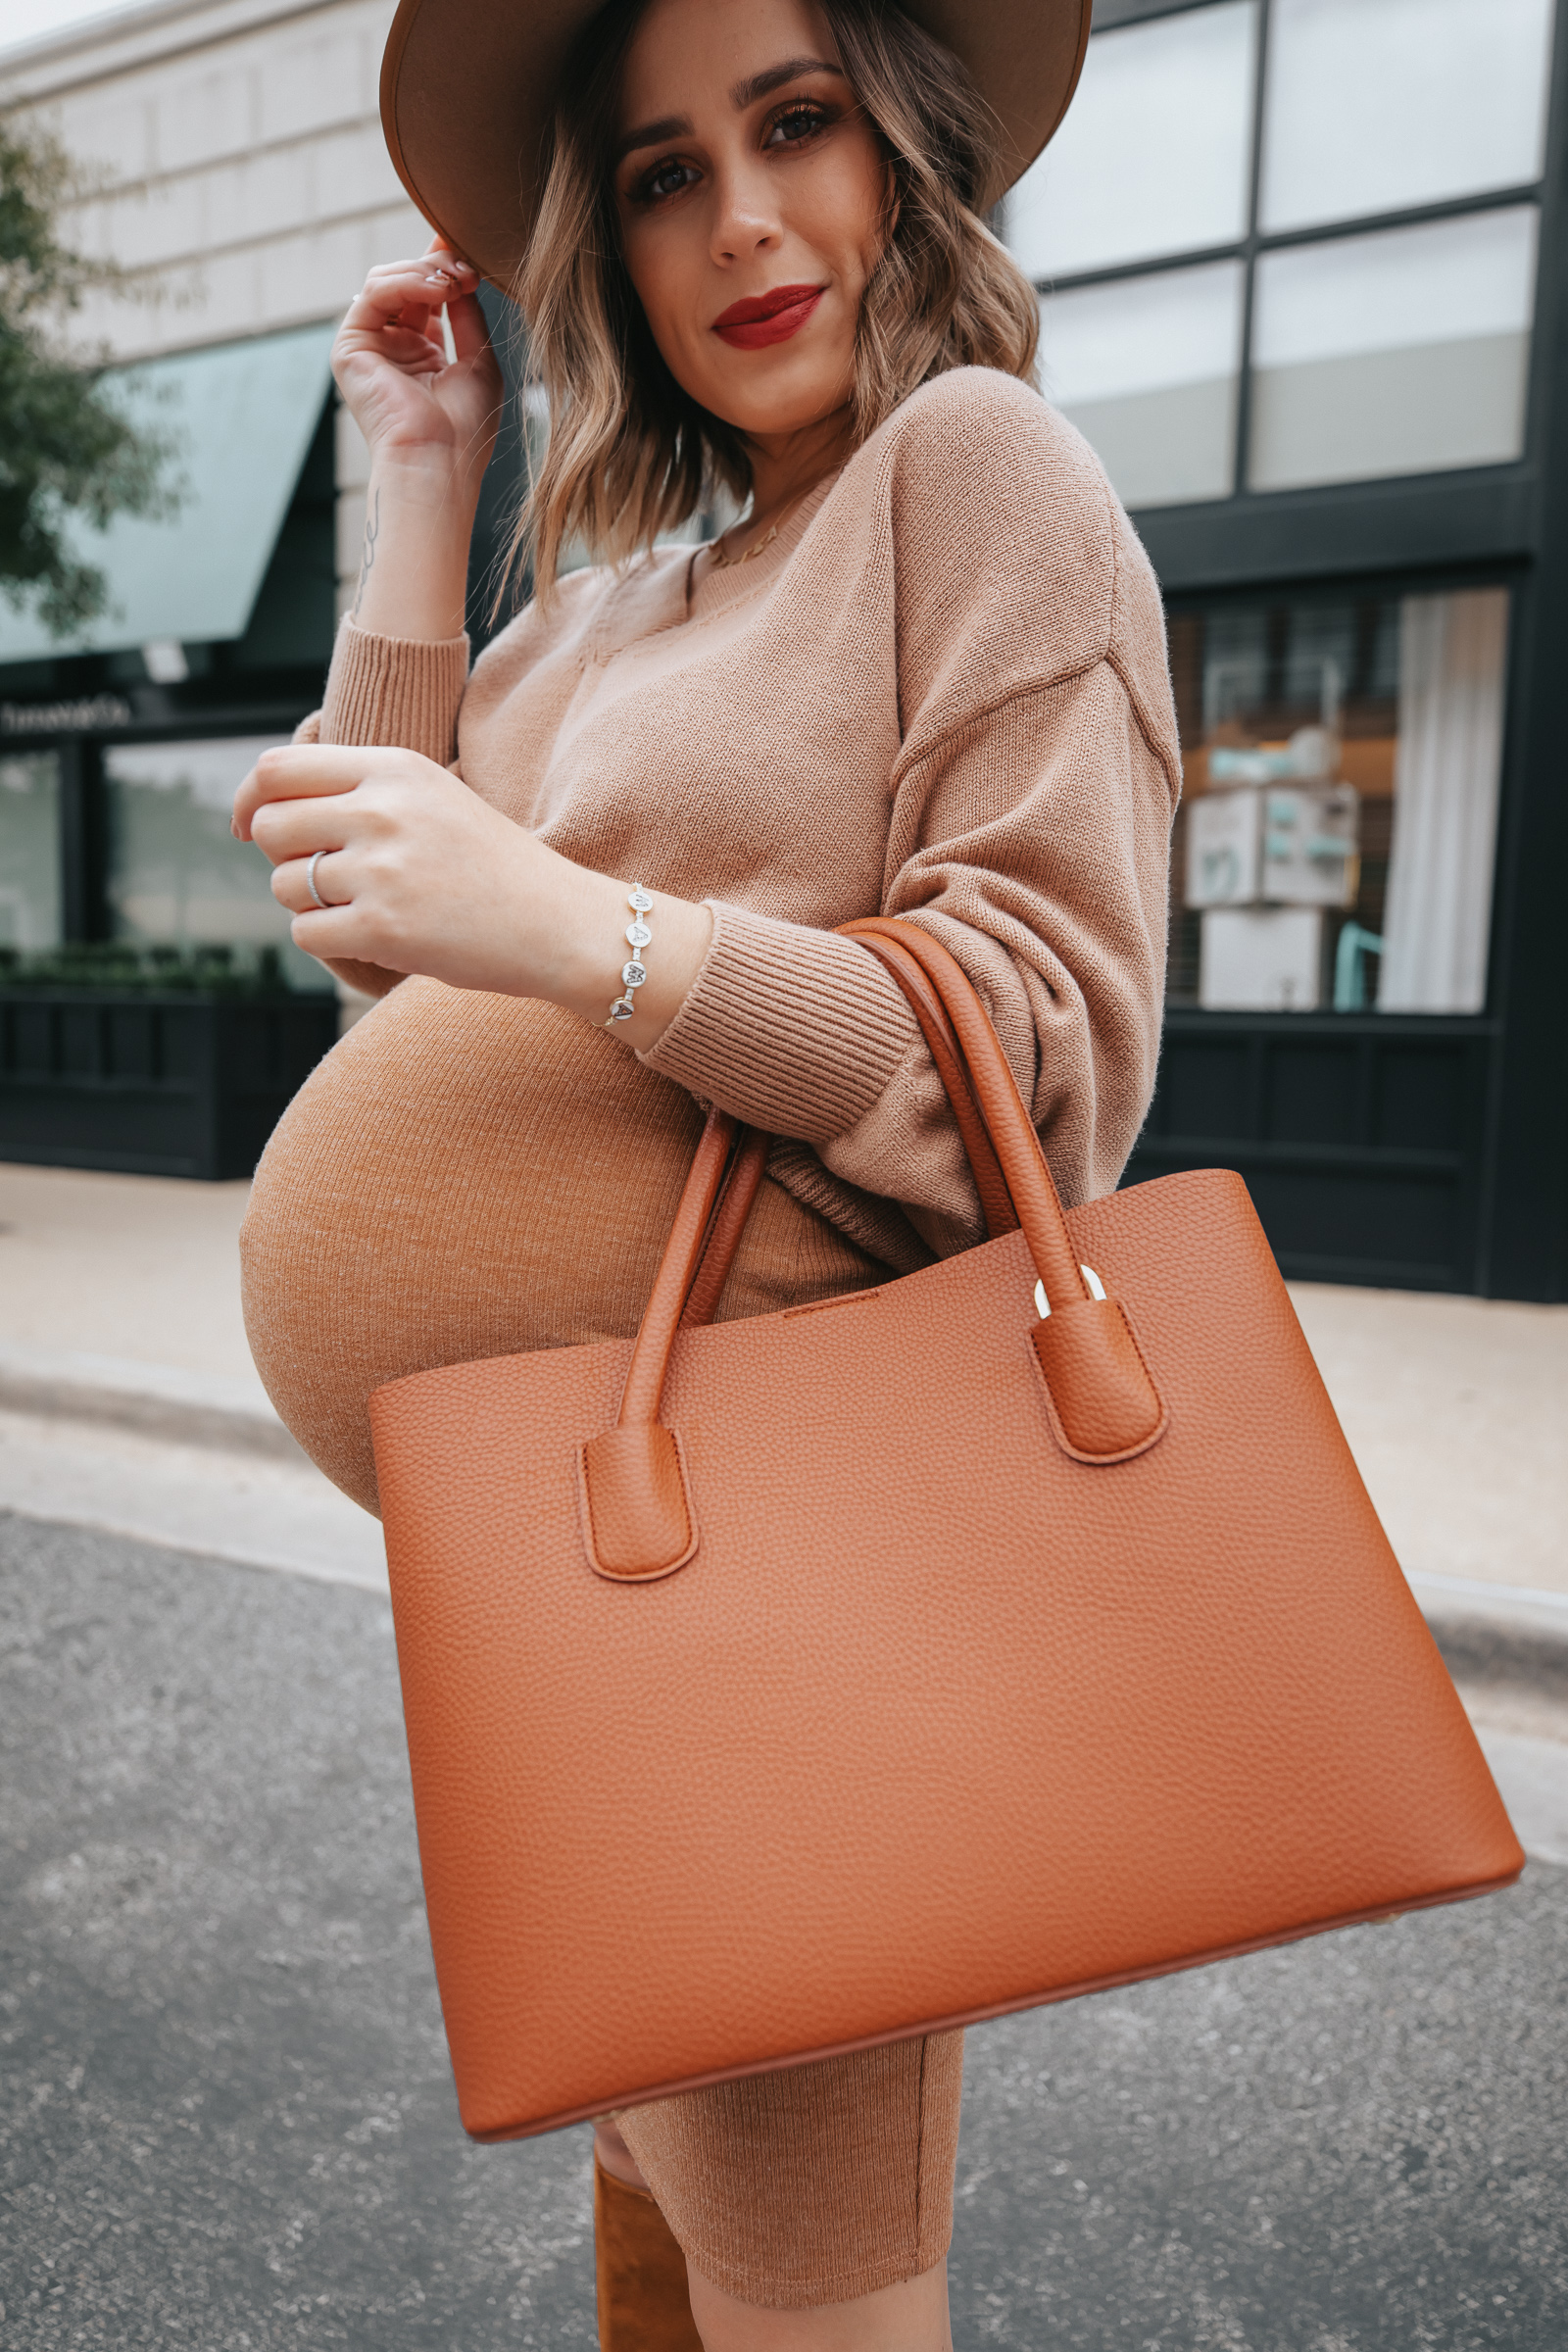 Houston Fashion blogger Elly Brown wears an Angela Roi Bag for a fall monochrome outfit